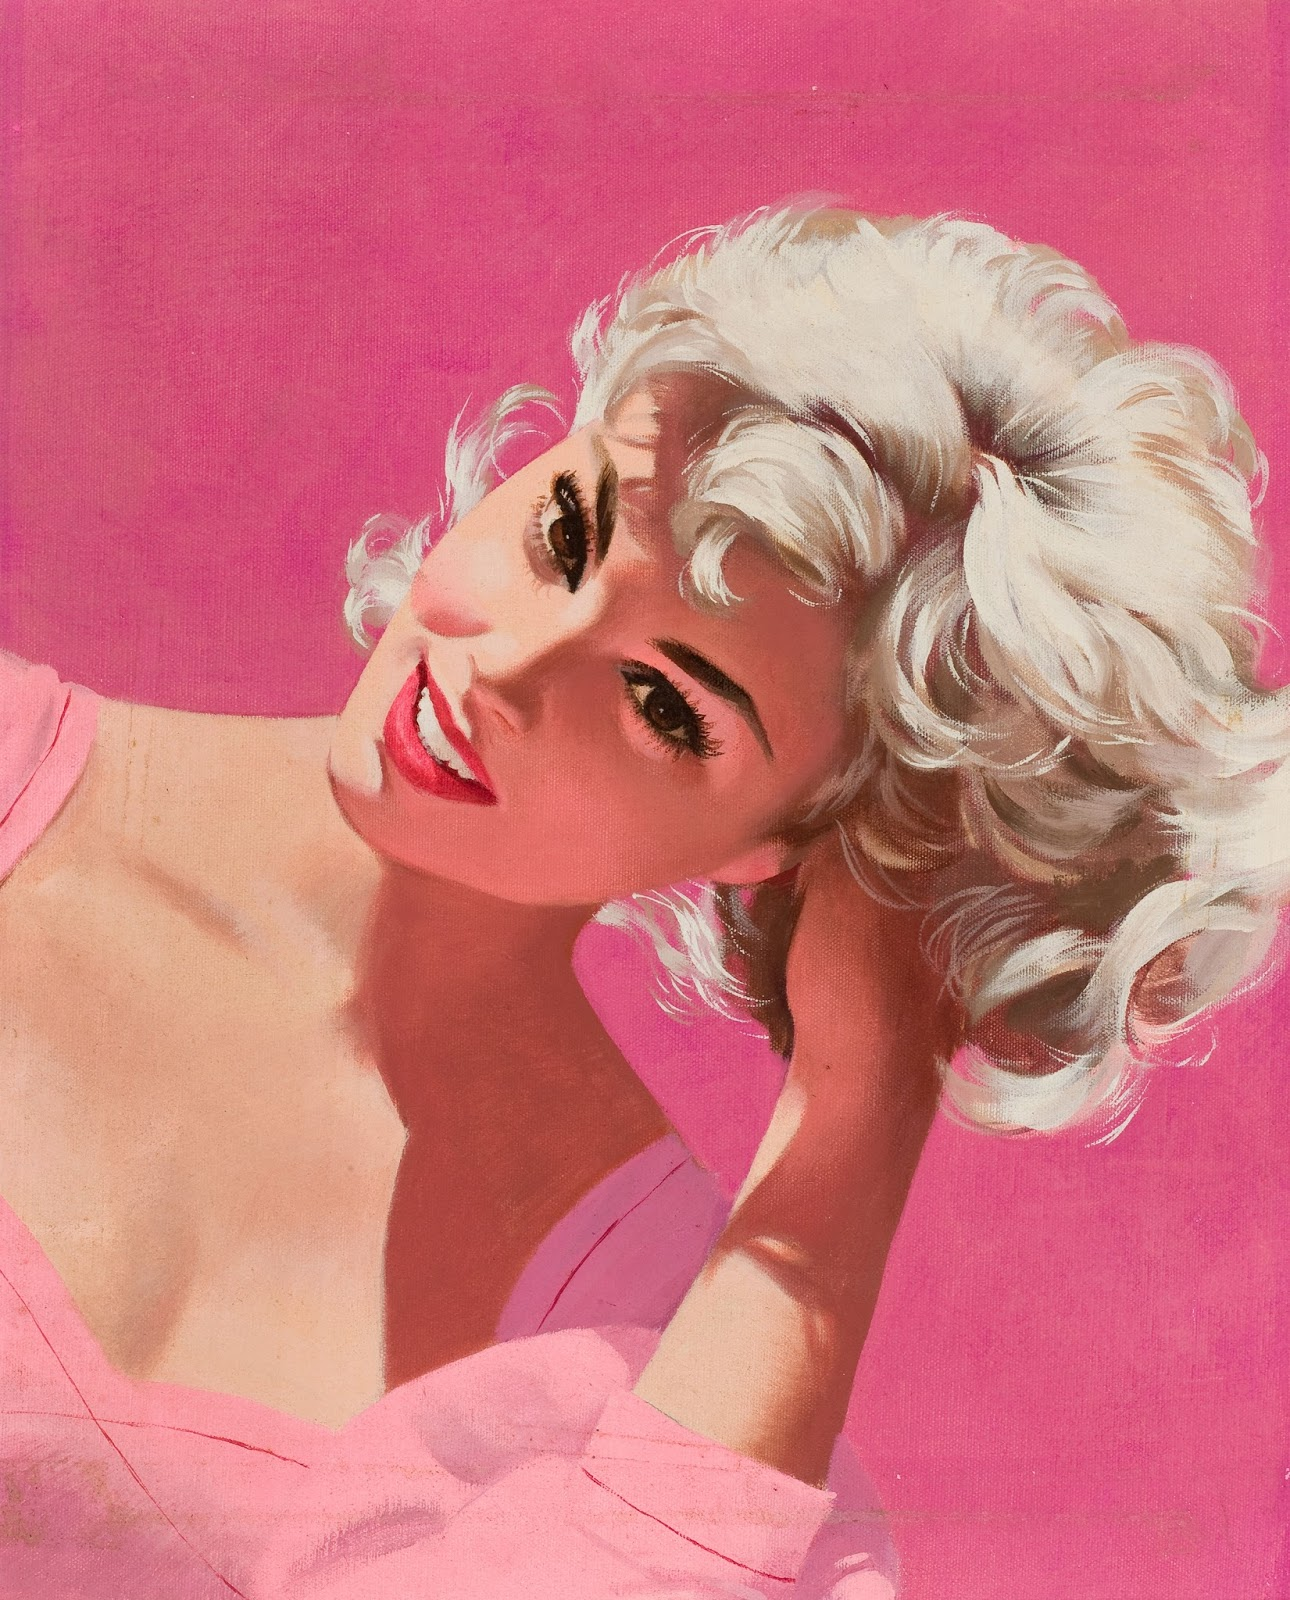 Jon Whitcomb Magazine cover, c. 1960